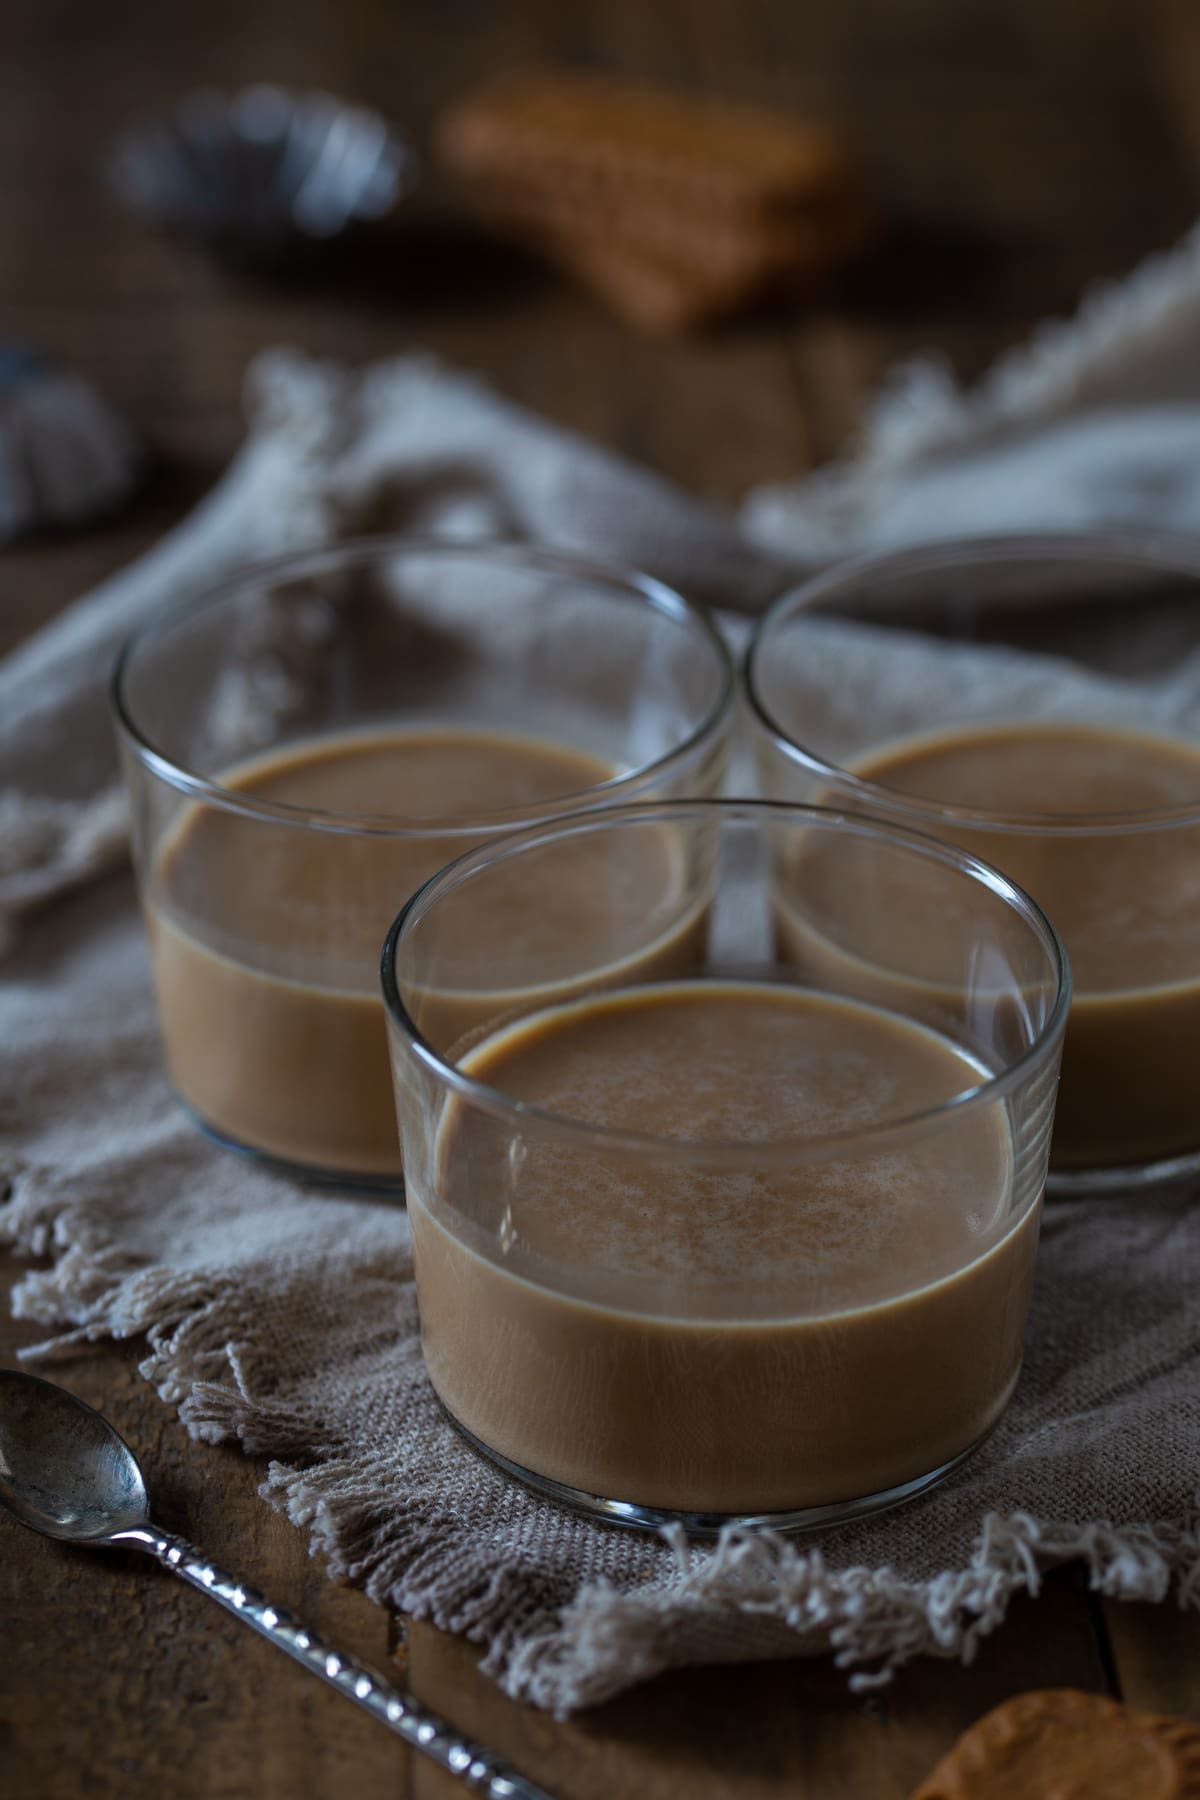 The panna cotta in see-through glasses.